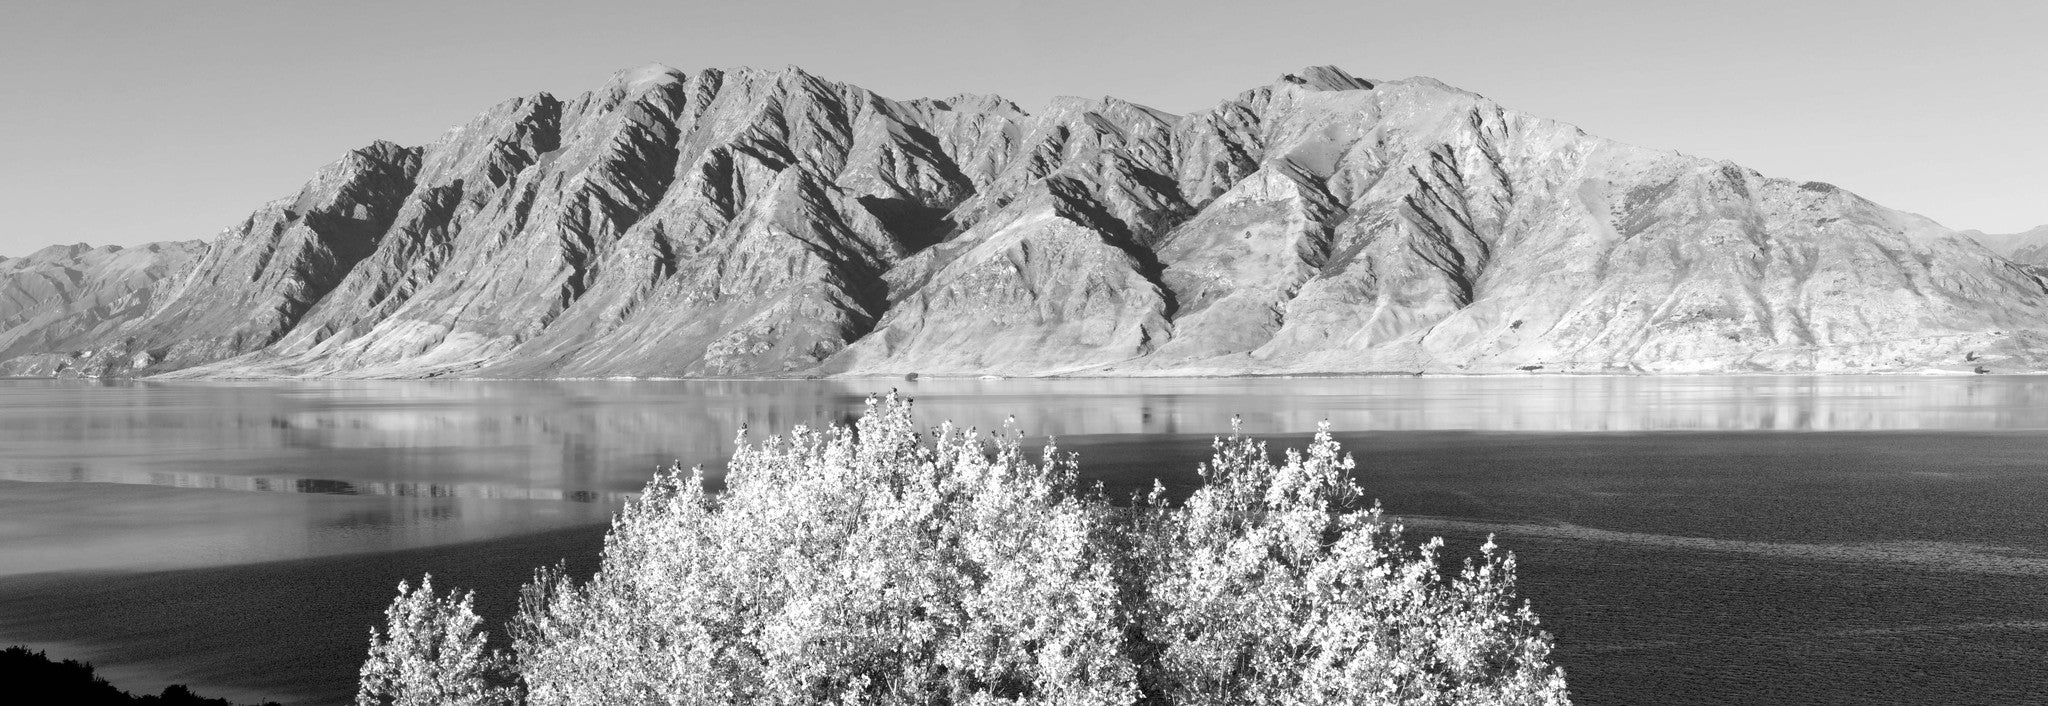 Lake Hawea, South Island